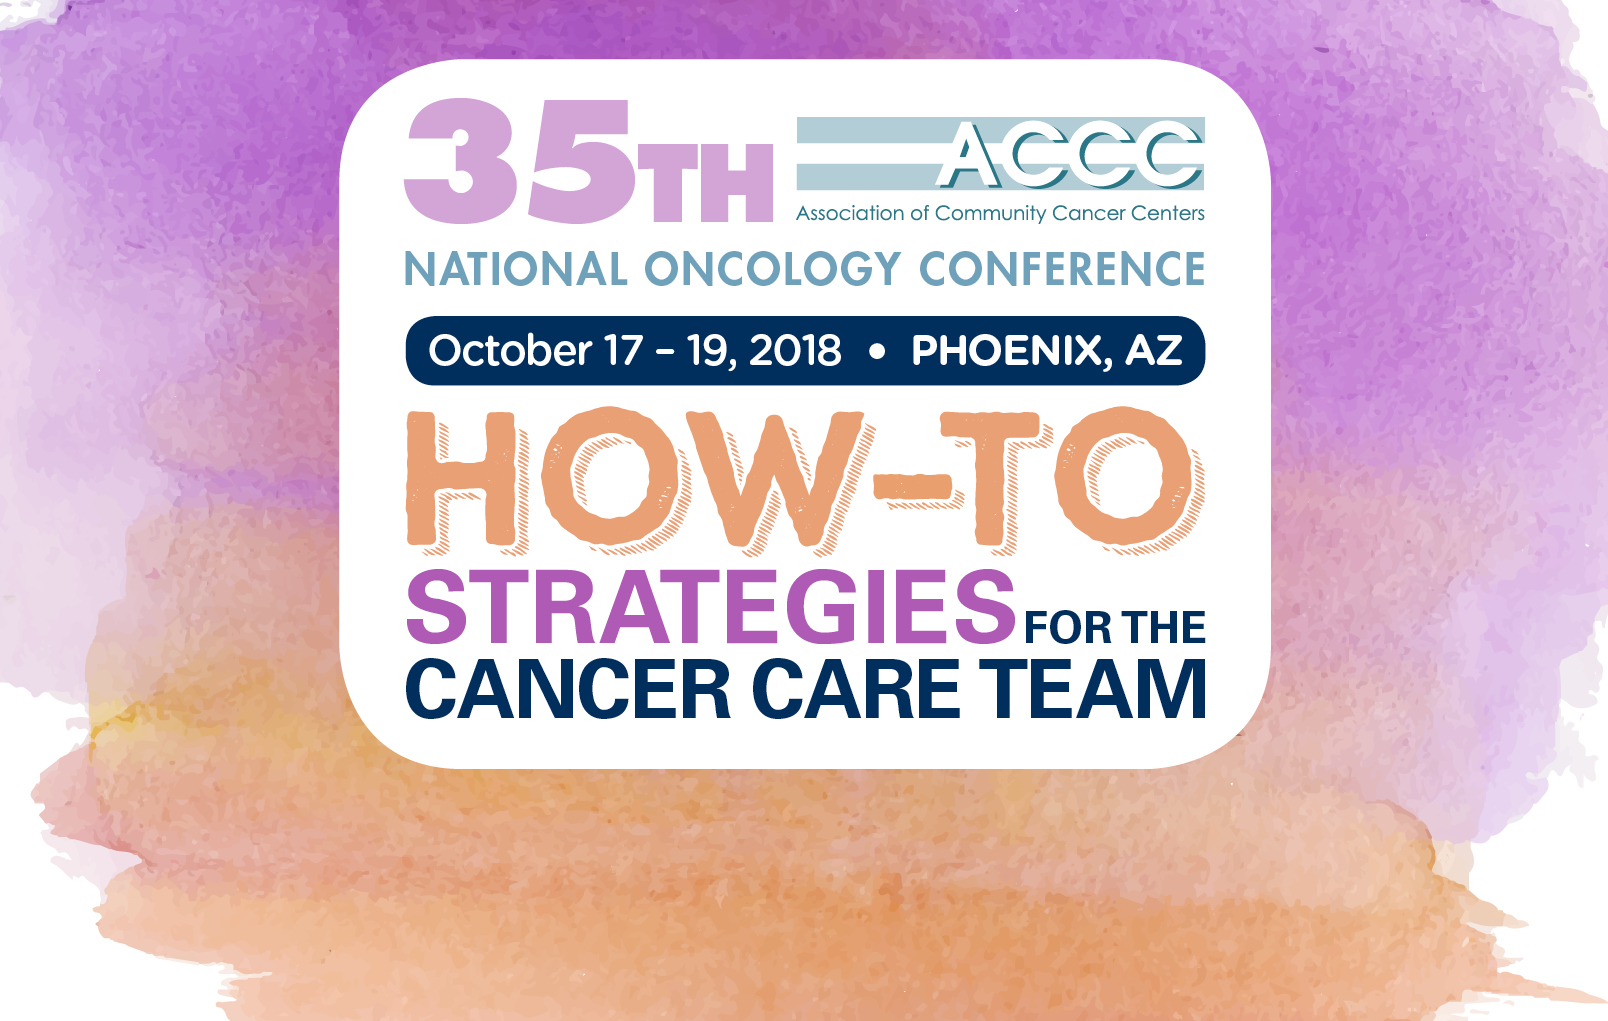 National Oncology Conference 2018